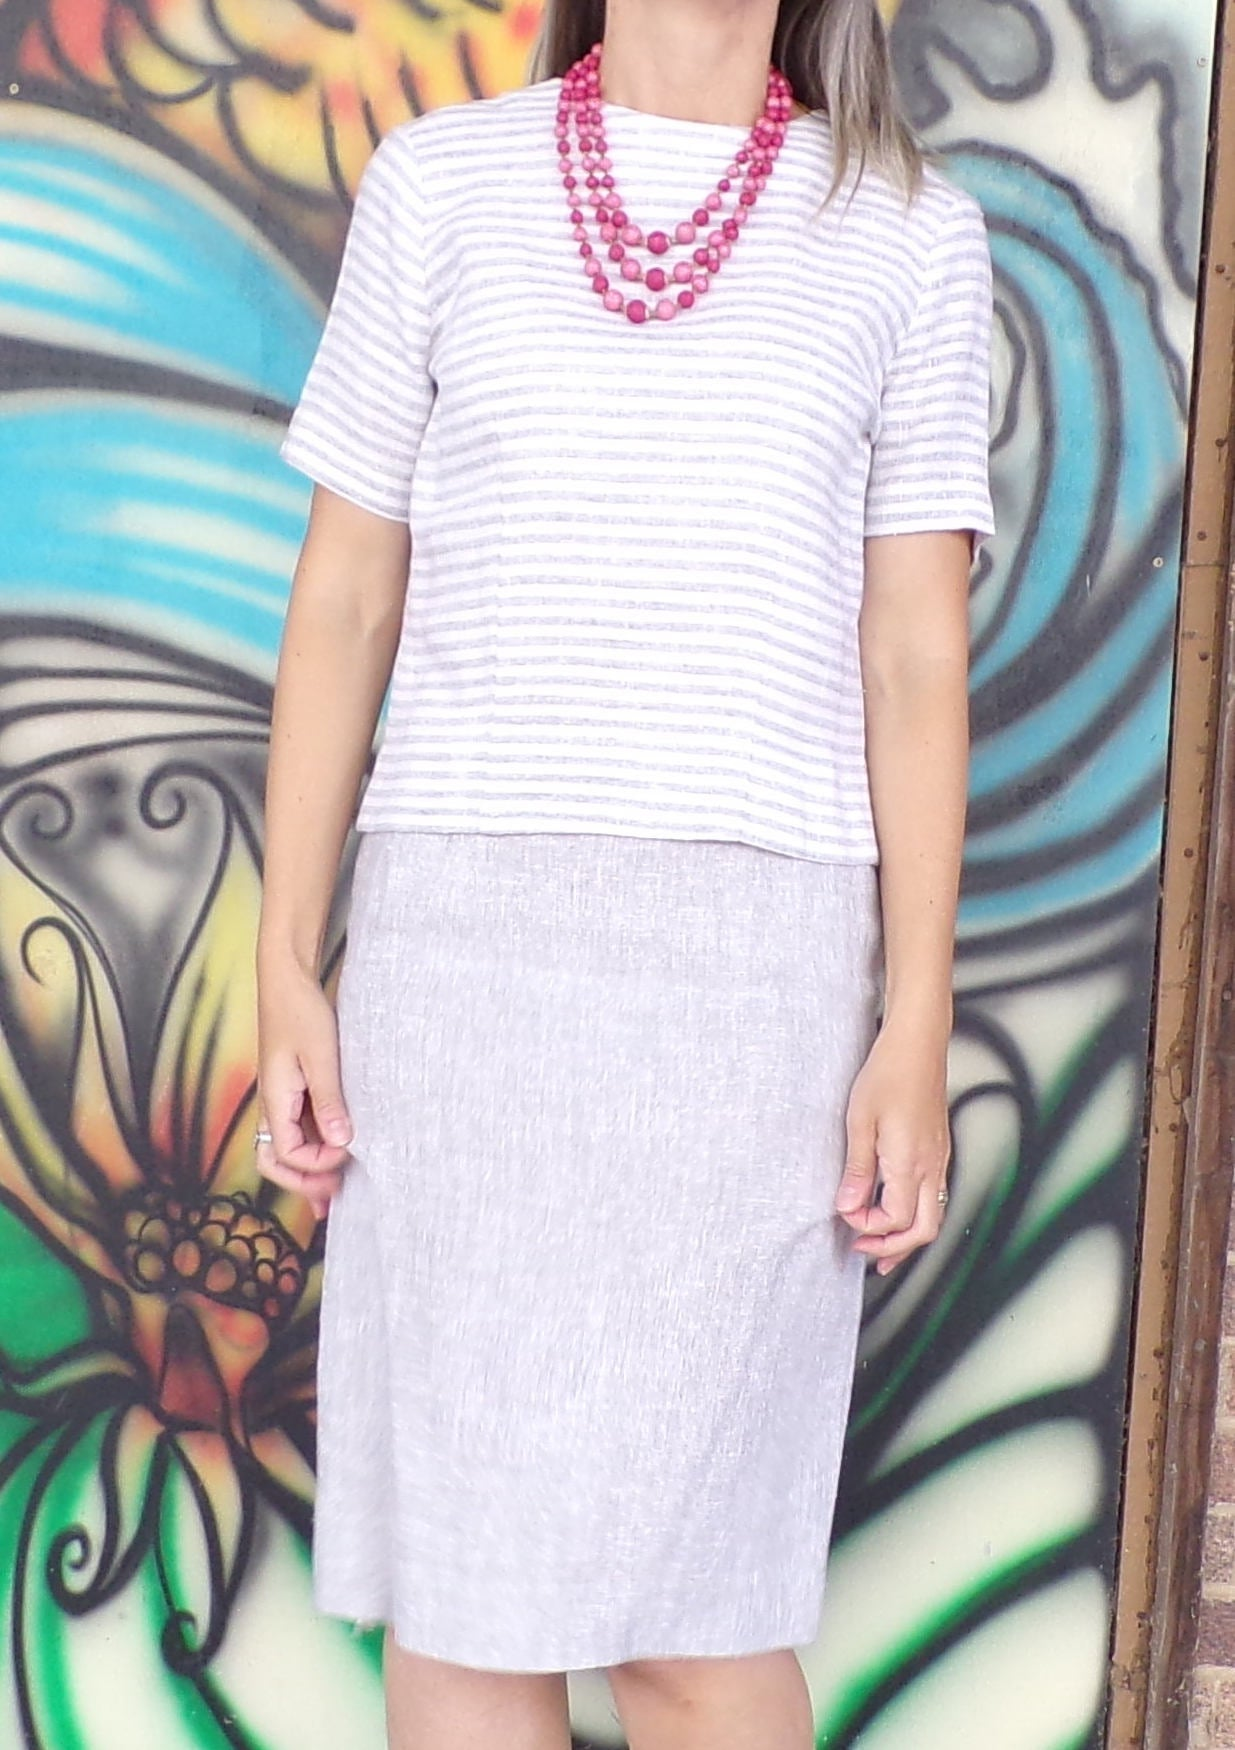 GRAY pencil SKIRT SET striped top linen summer outfit separates S (B2)